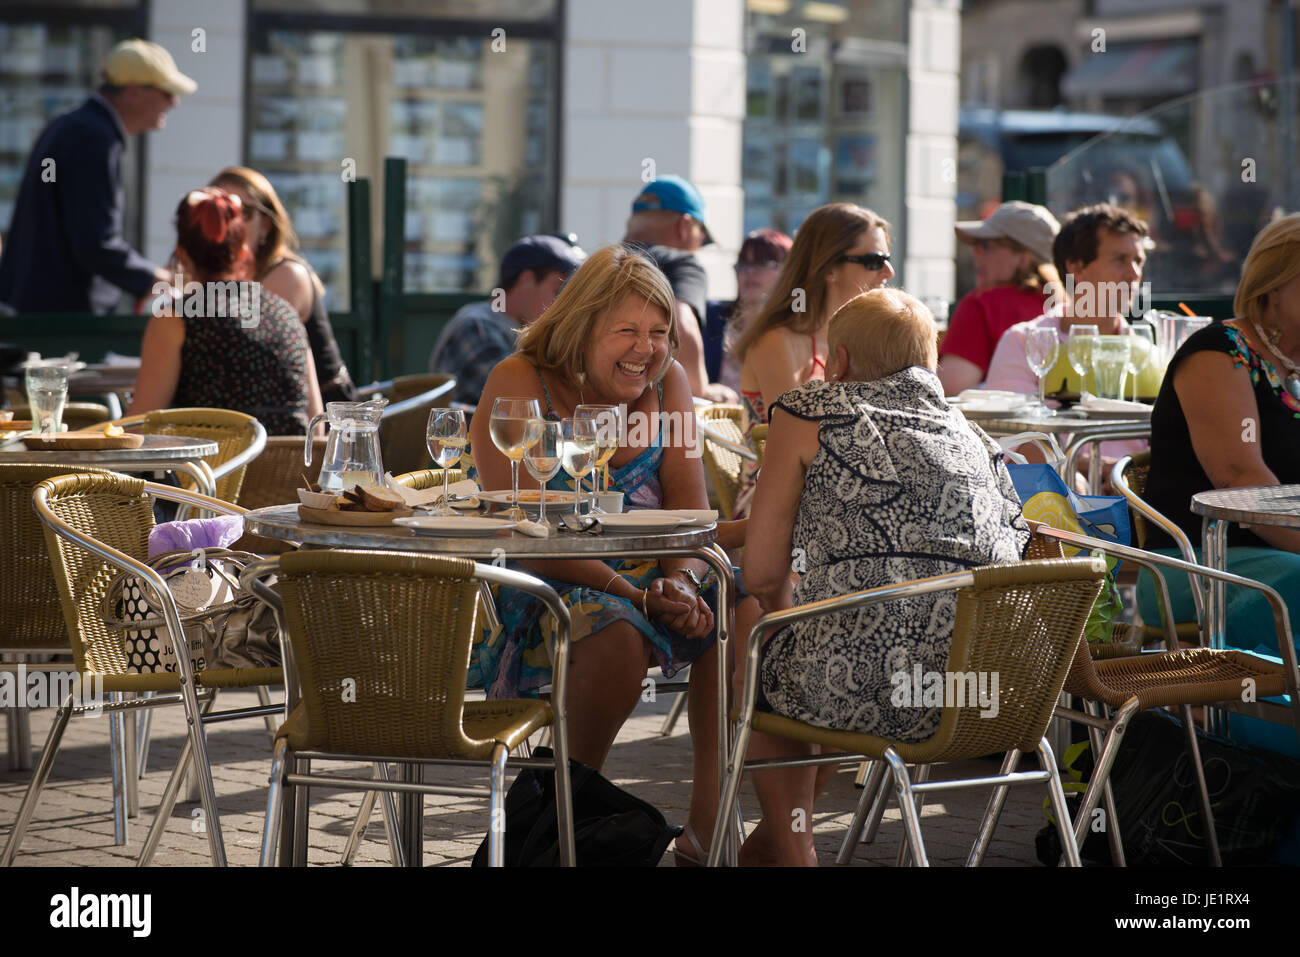 Pic by Guy Newman. 18.07.2013. Crowds gather to socialise in and around Lemon Quay in Truro in Cornwall. - Stock Image